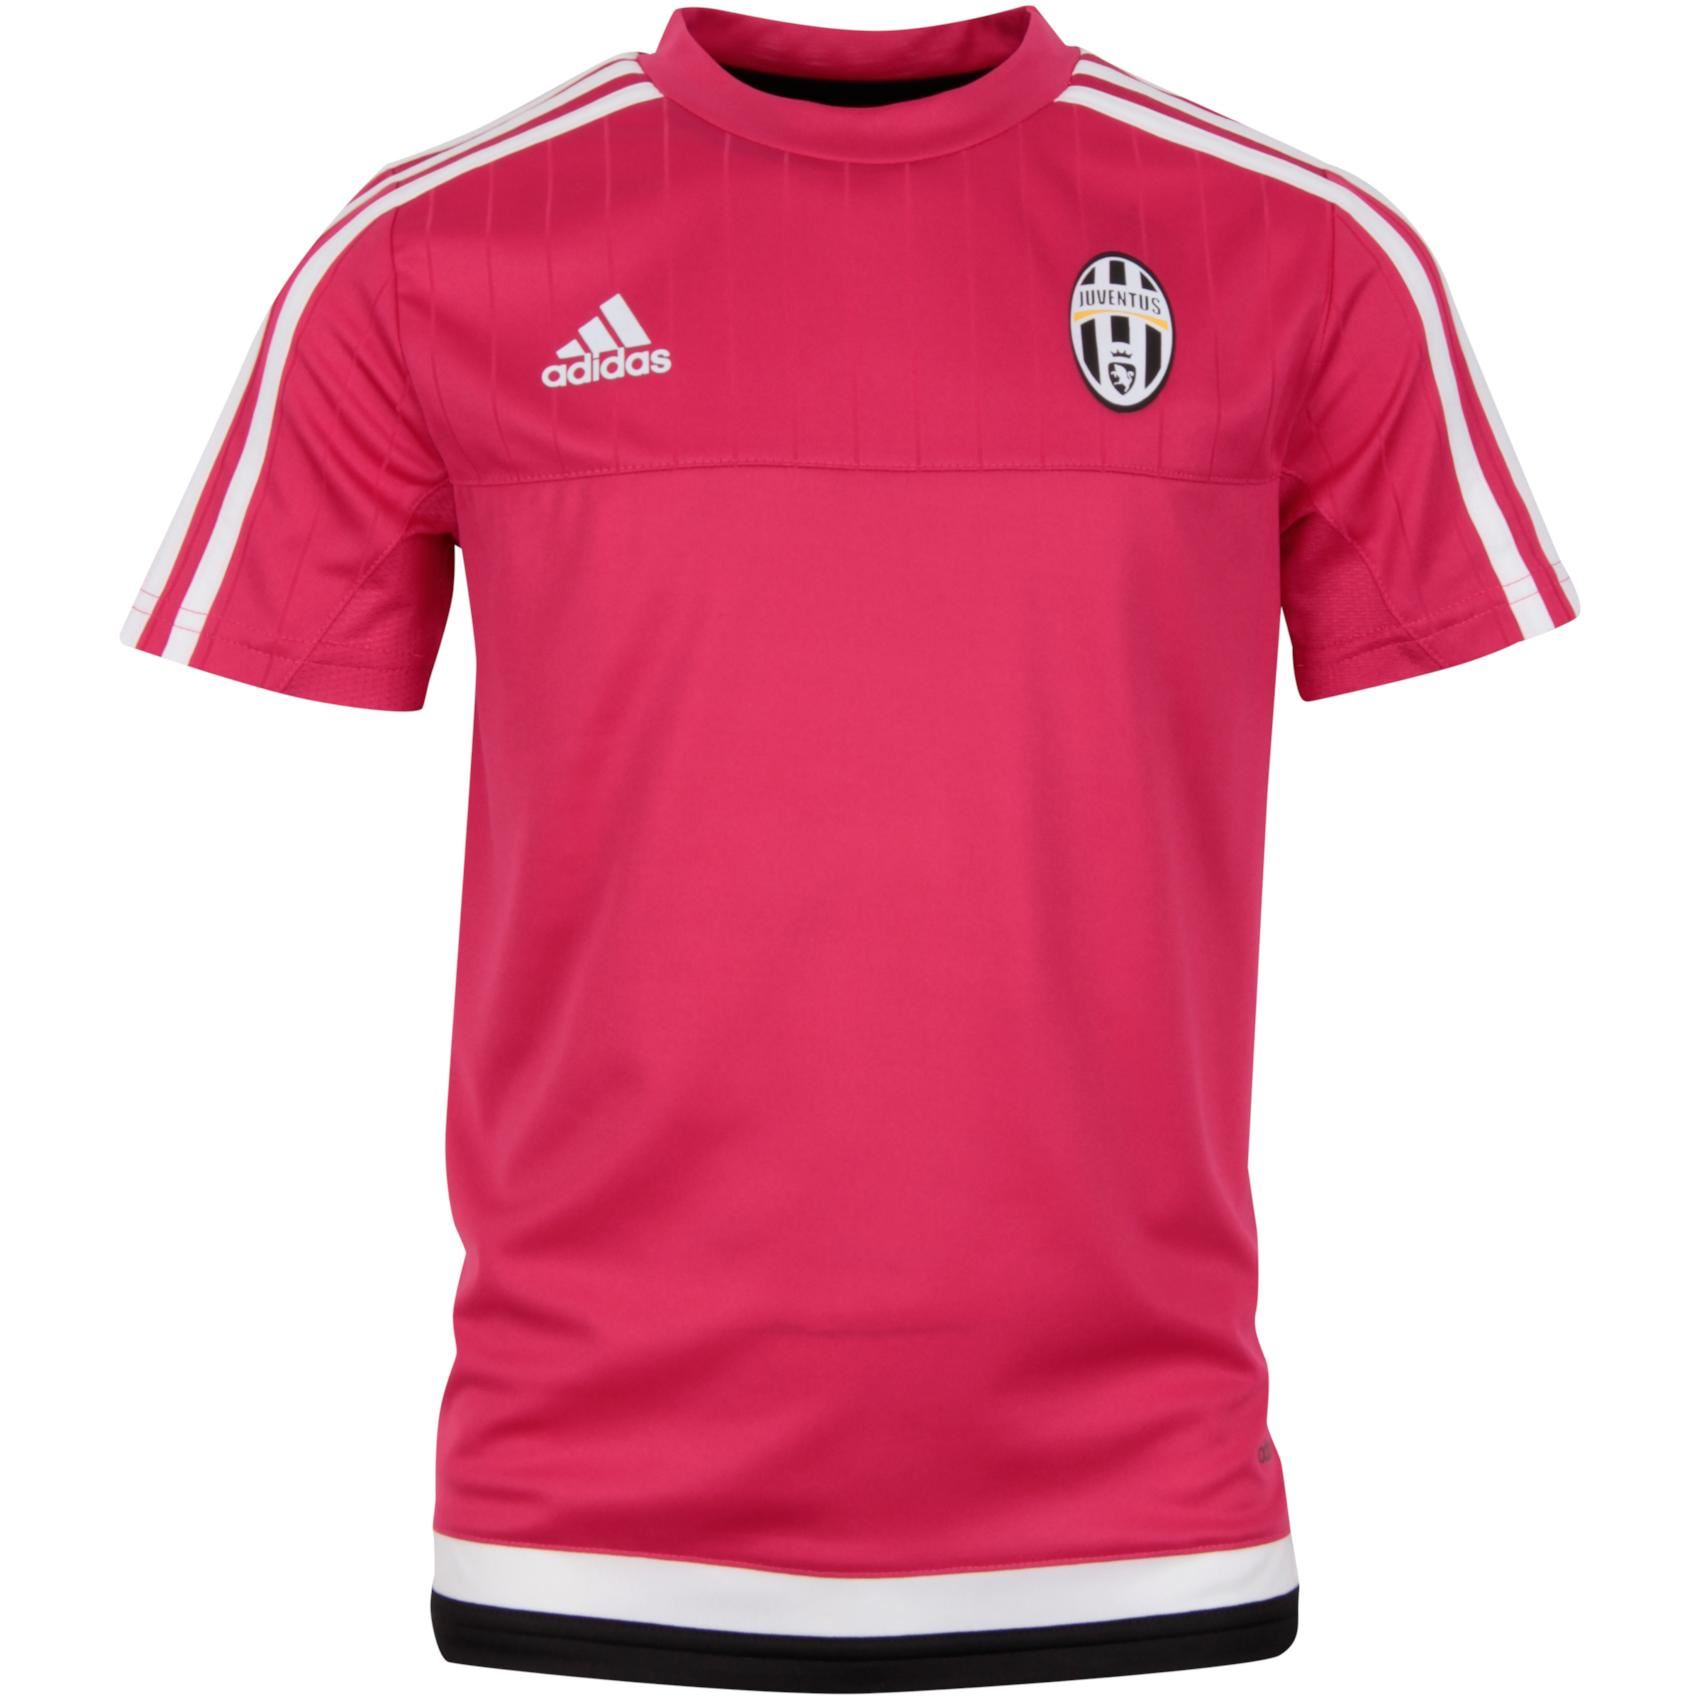 sports shoes e0a85 de970 Details about adidas Juventus Training Jersey Juniors Pink Football Soccer  Shirt Top Juve